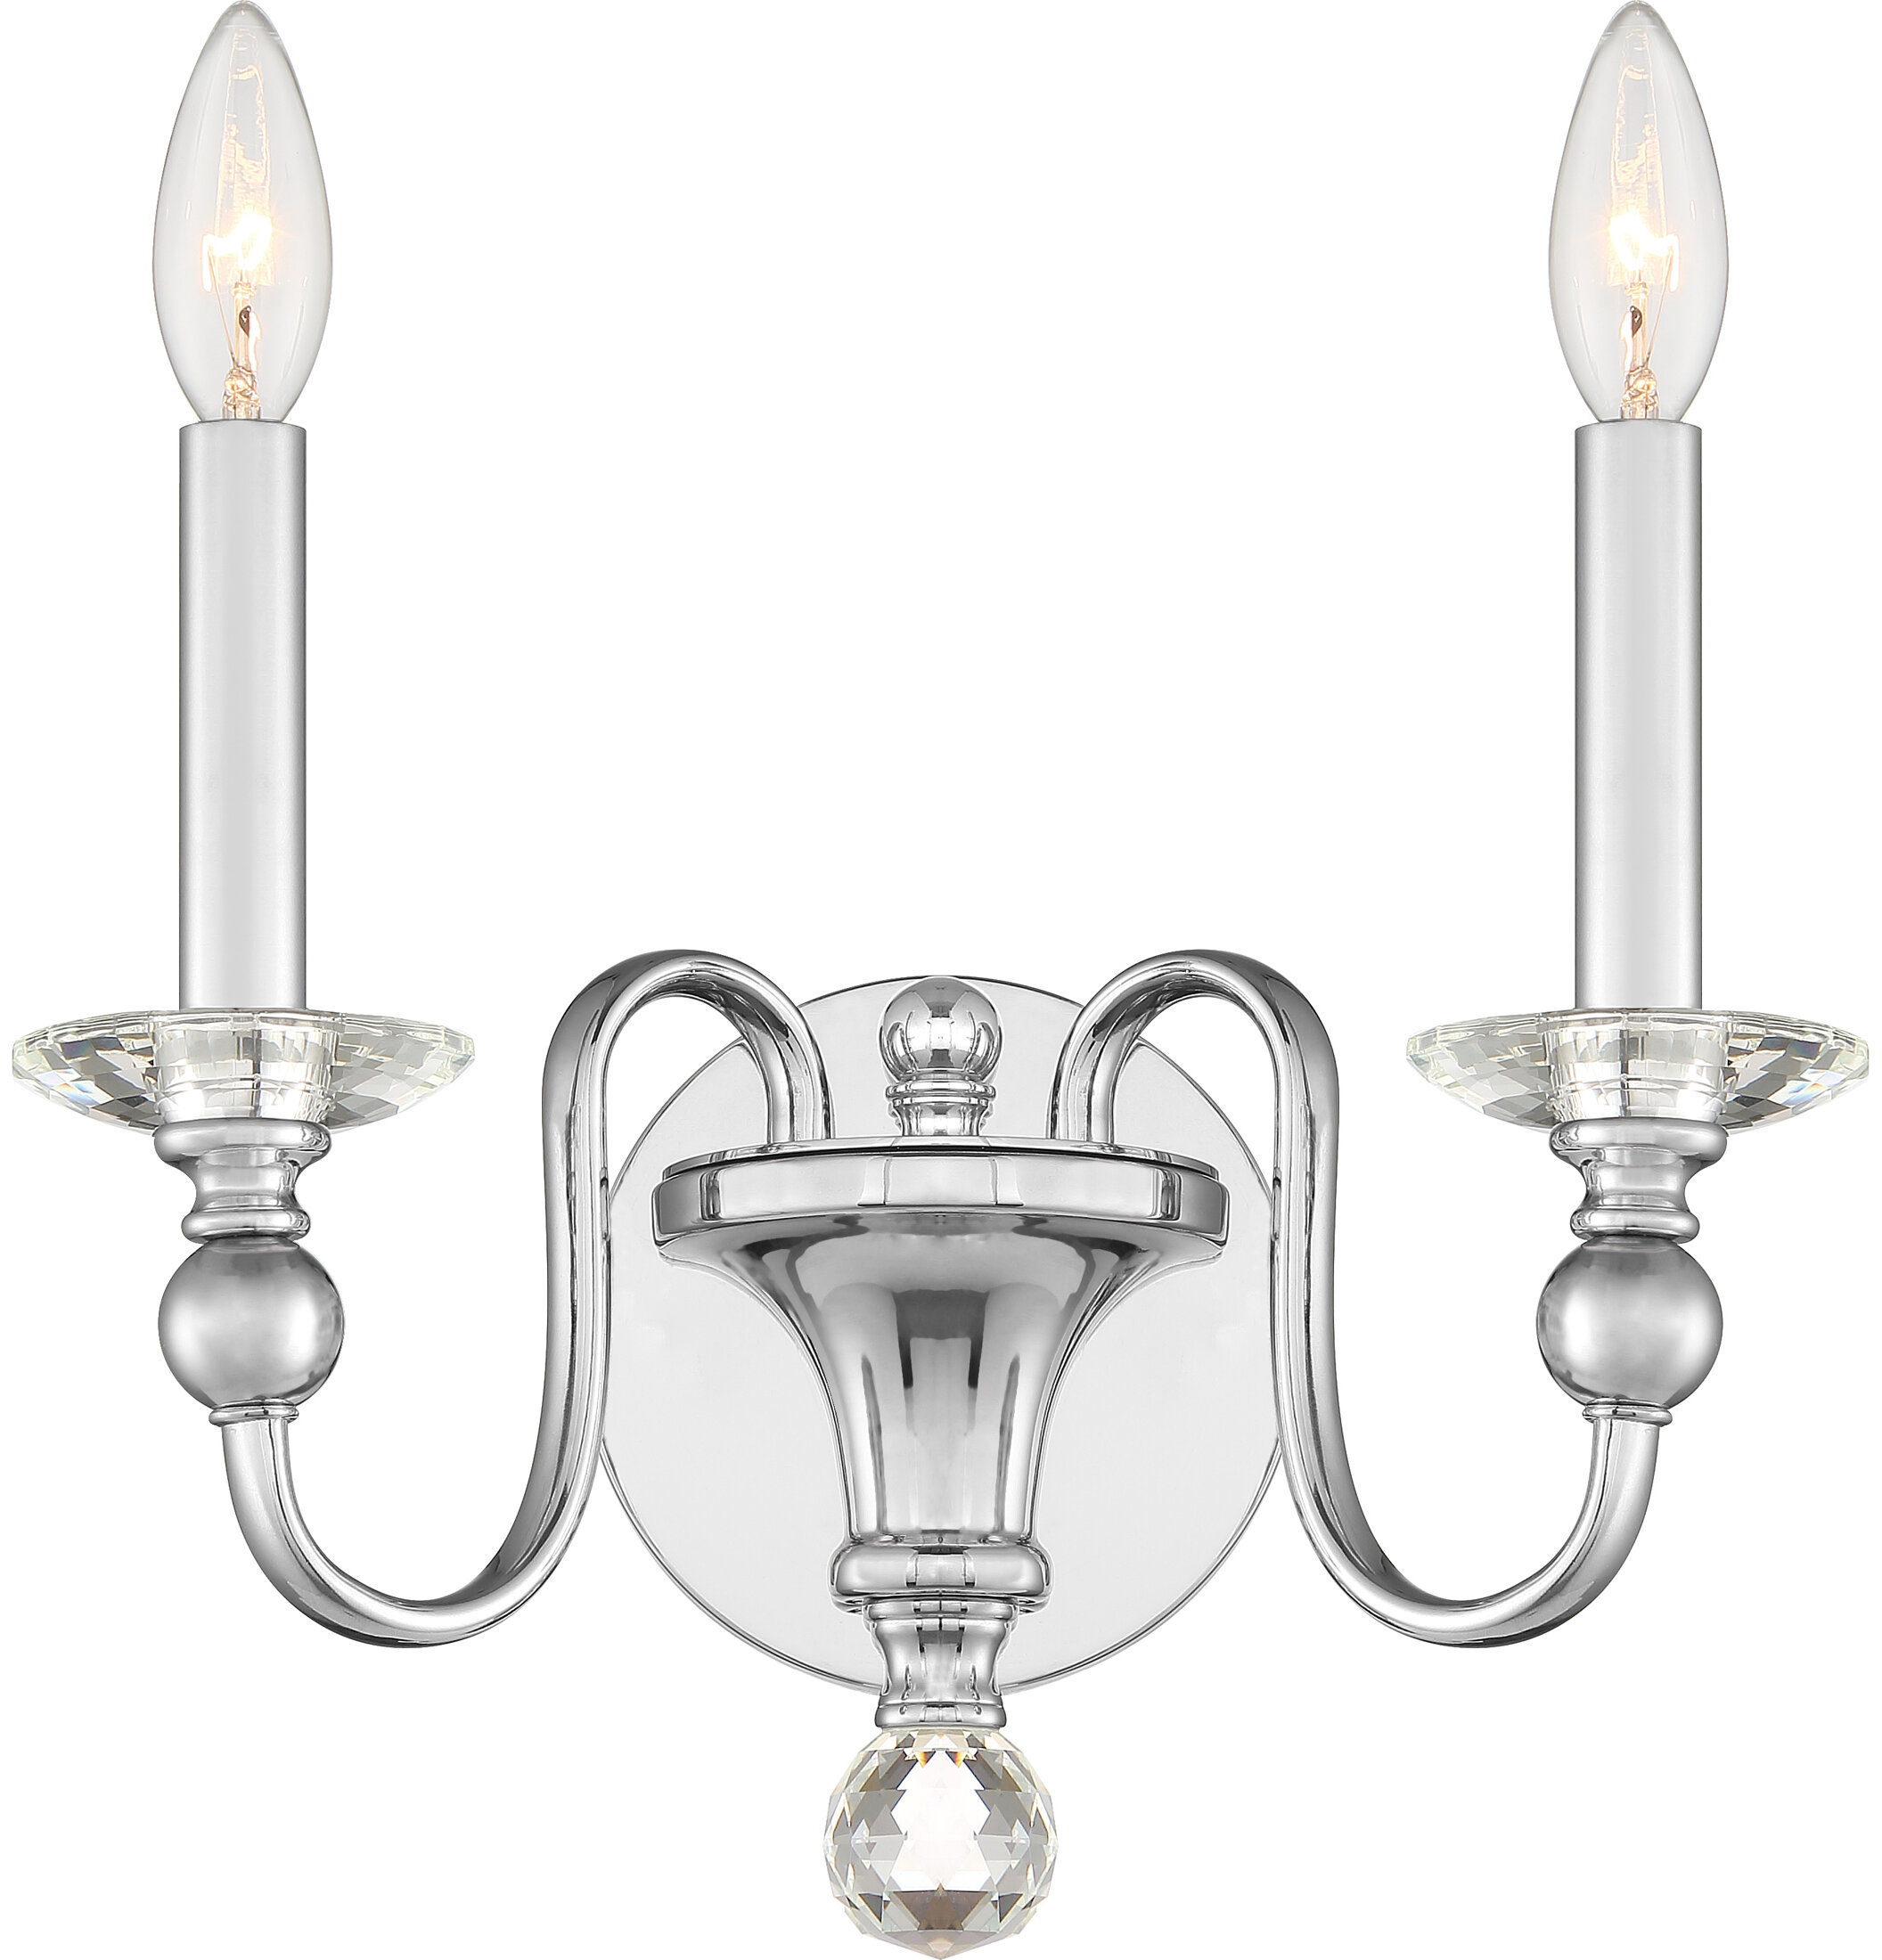 2 Candle Wall Sconces You Ll Love In 2021 Wayfair